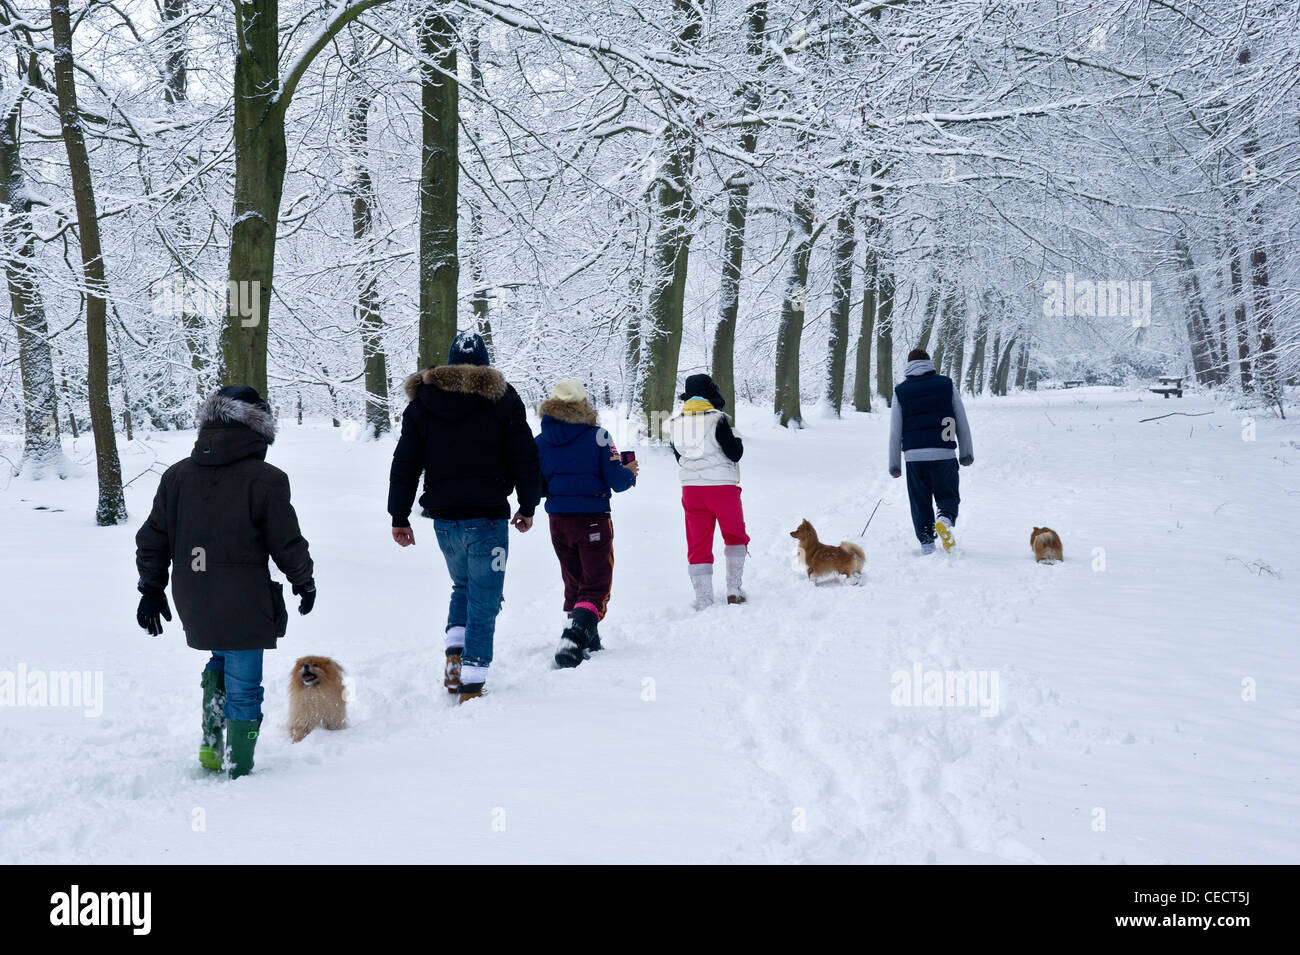 Woodlands in the snow - Stock Image